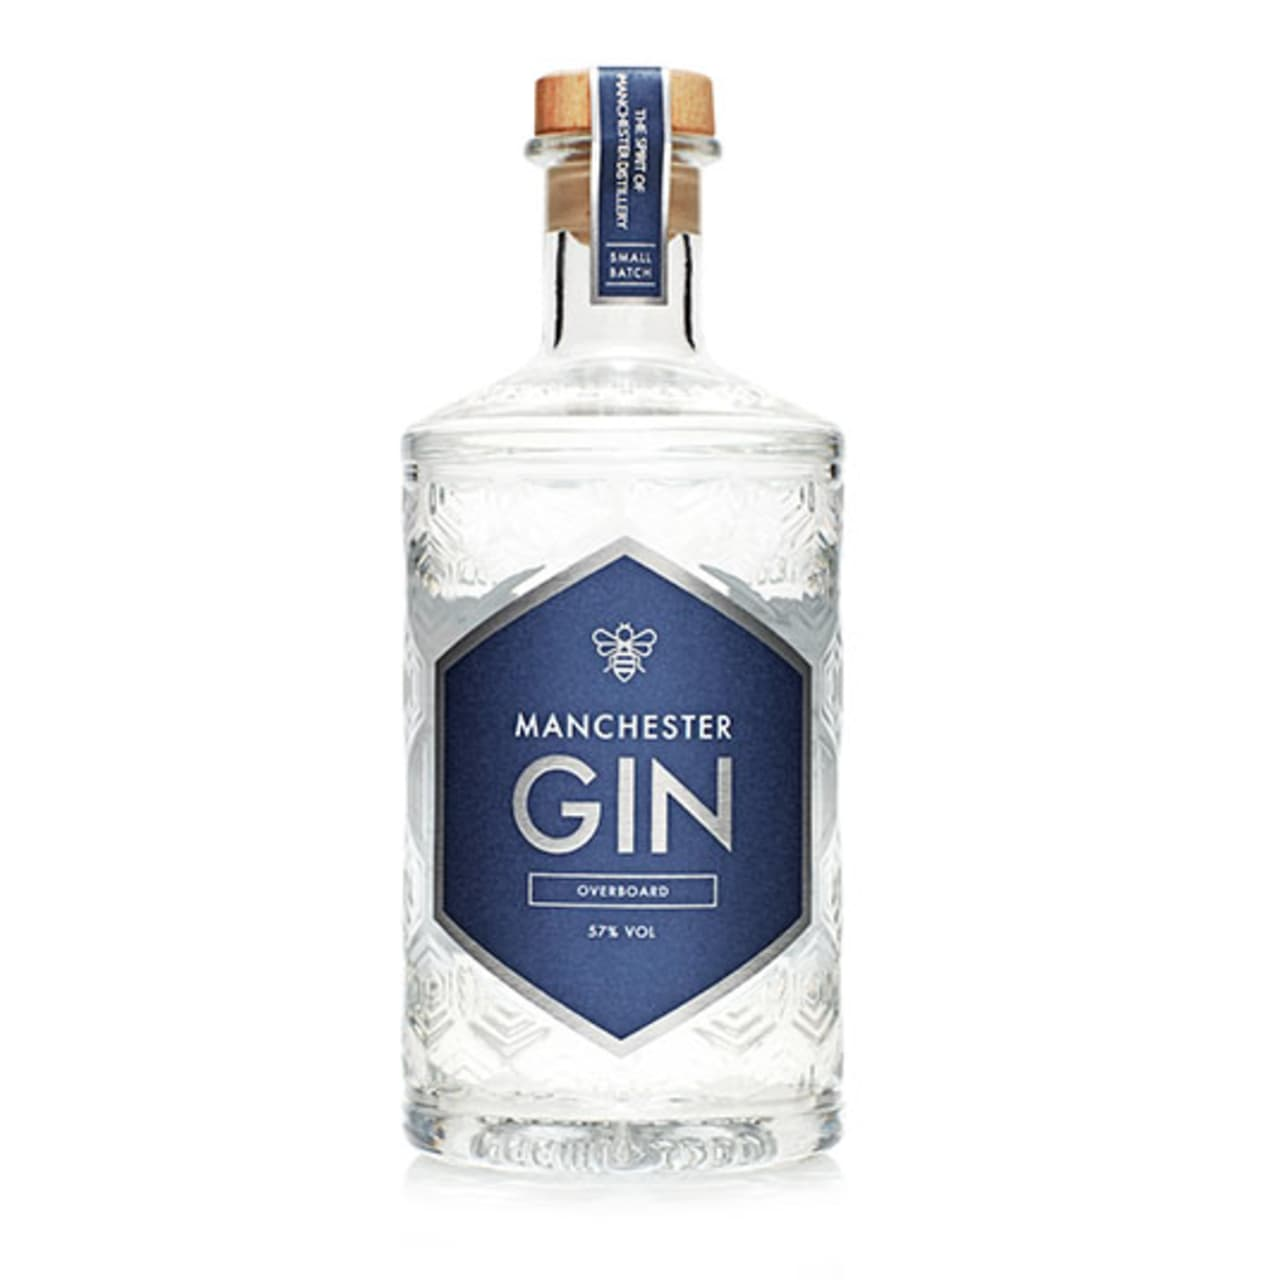 Product Image - Manchester Gin Overboard